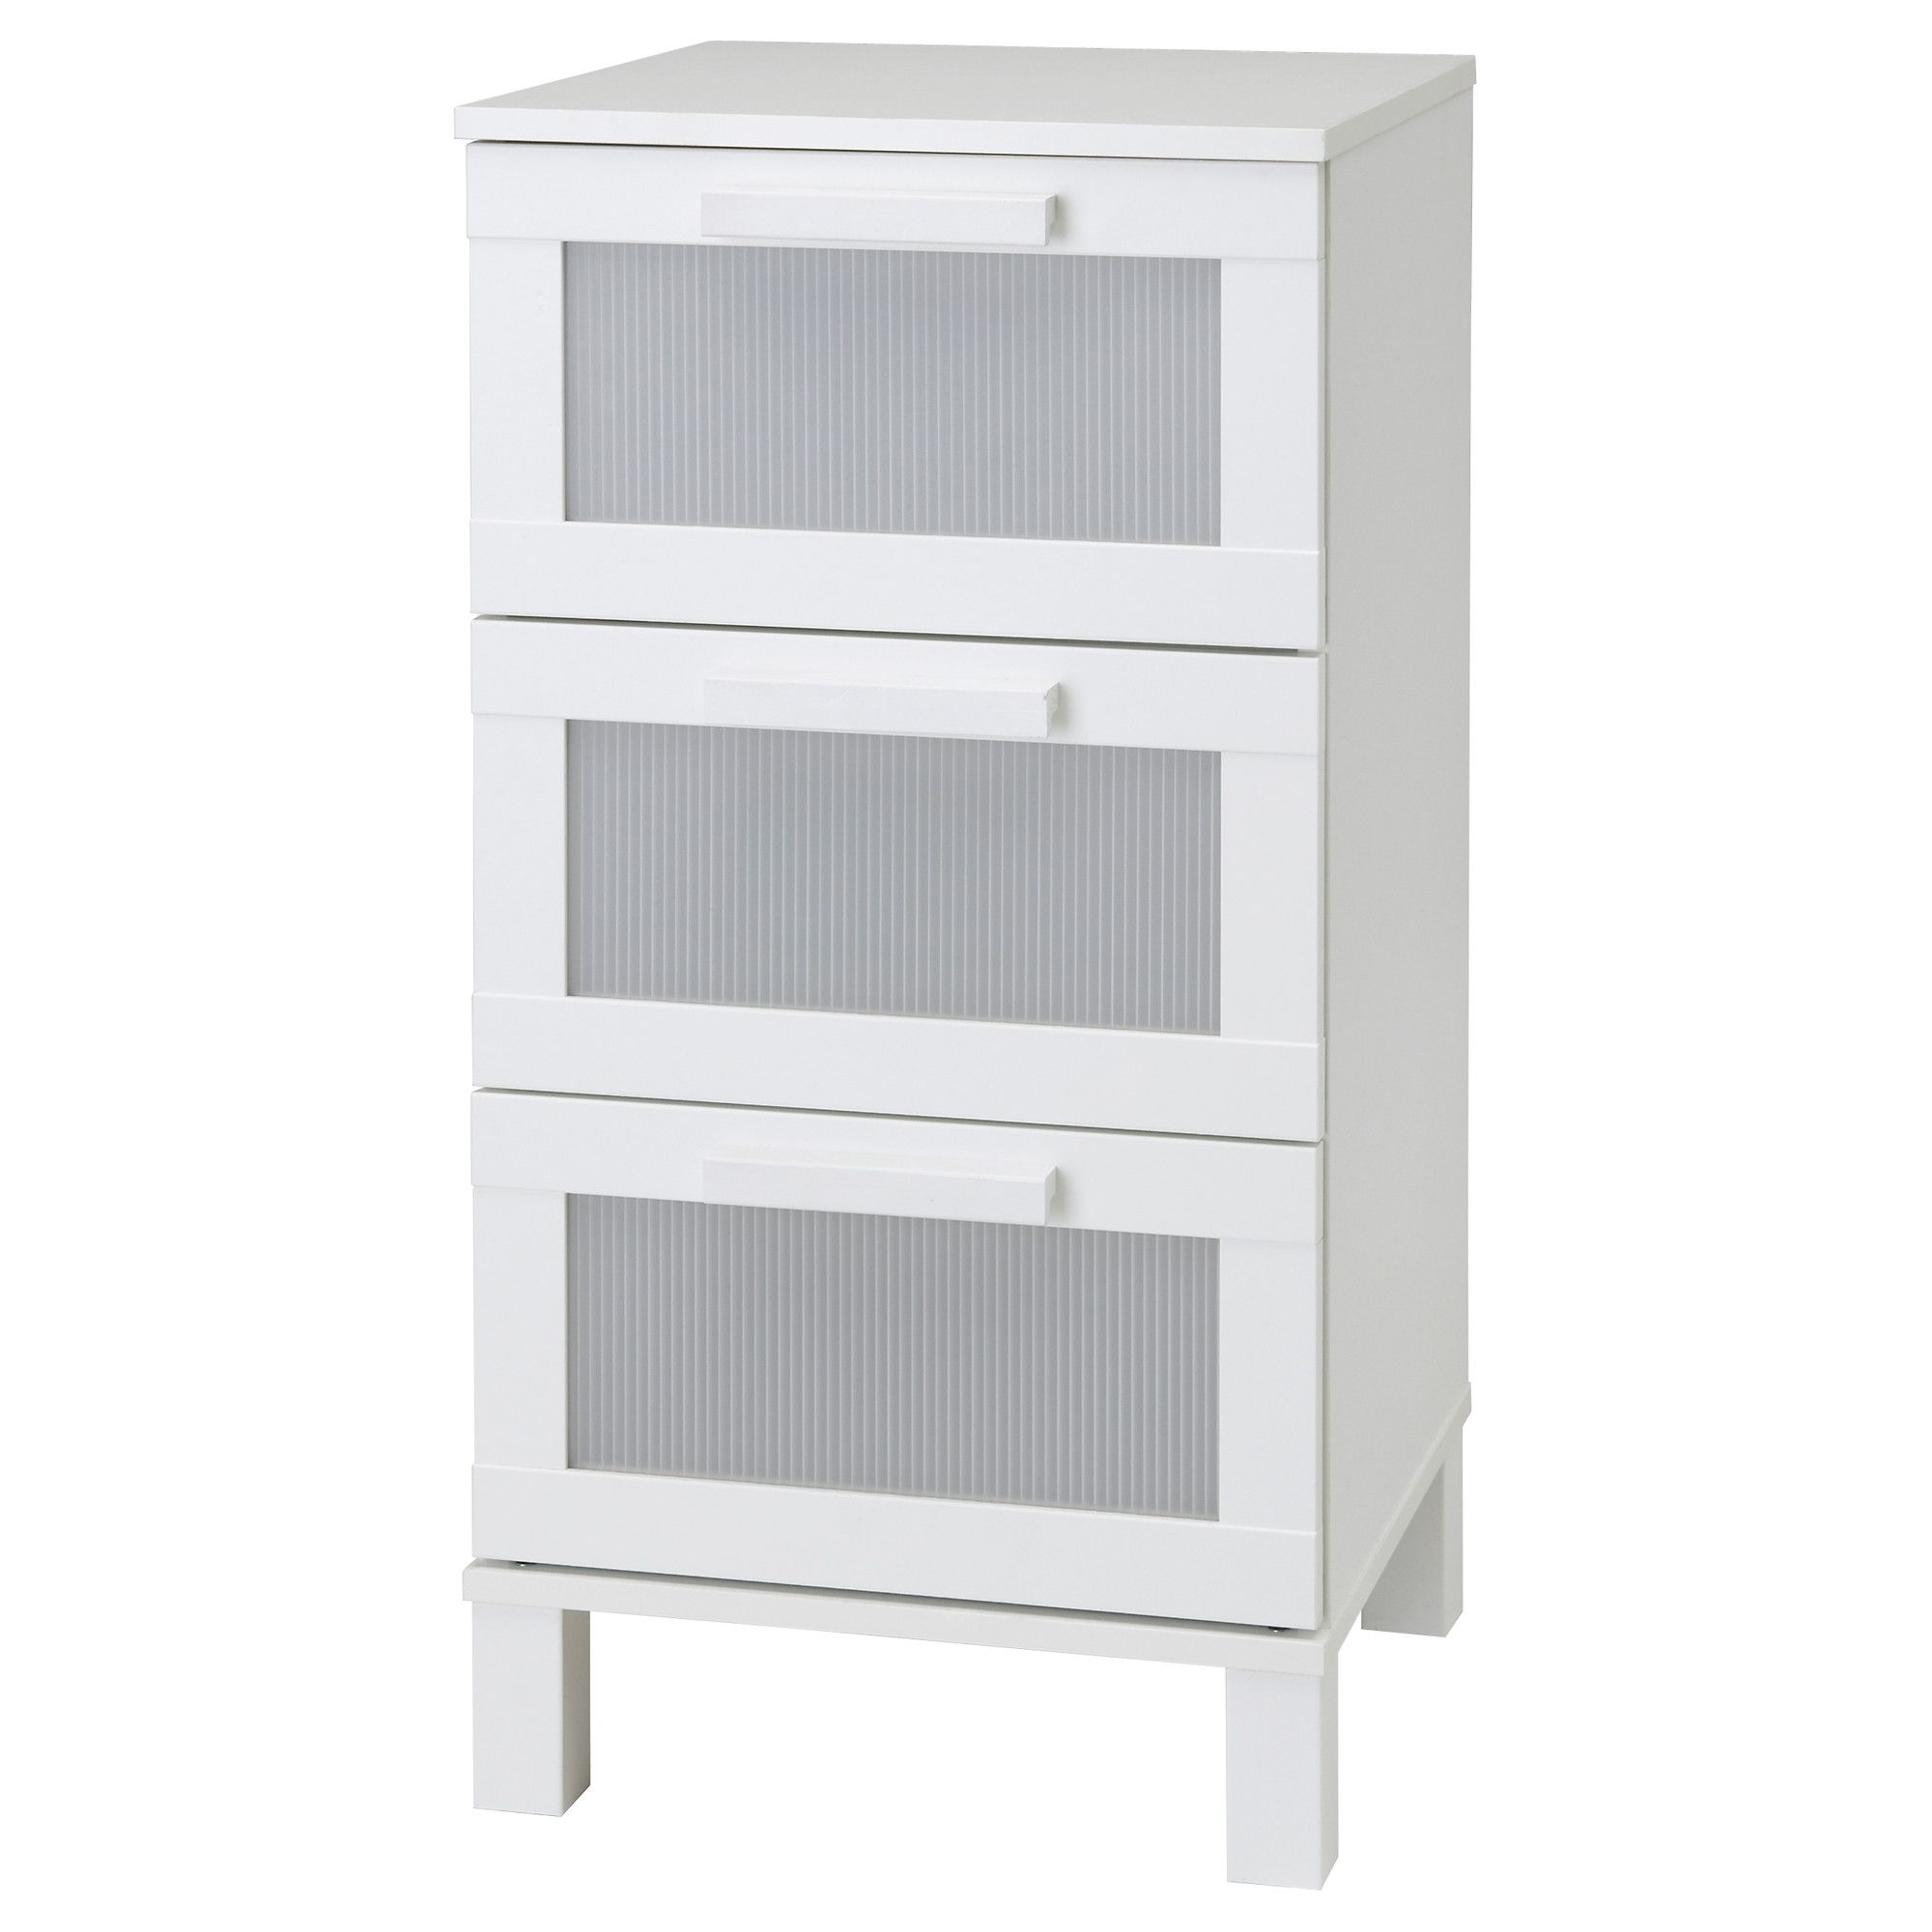 Aneboda Chest Of 3 Drawers Ikea For The Home